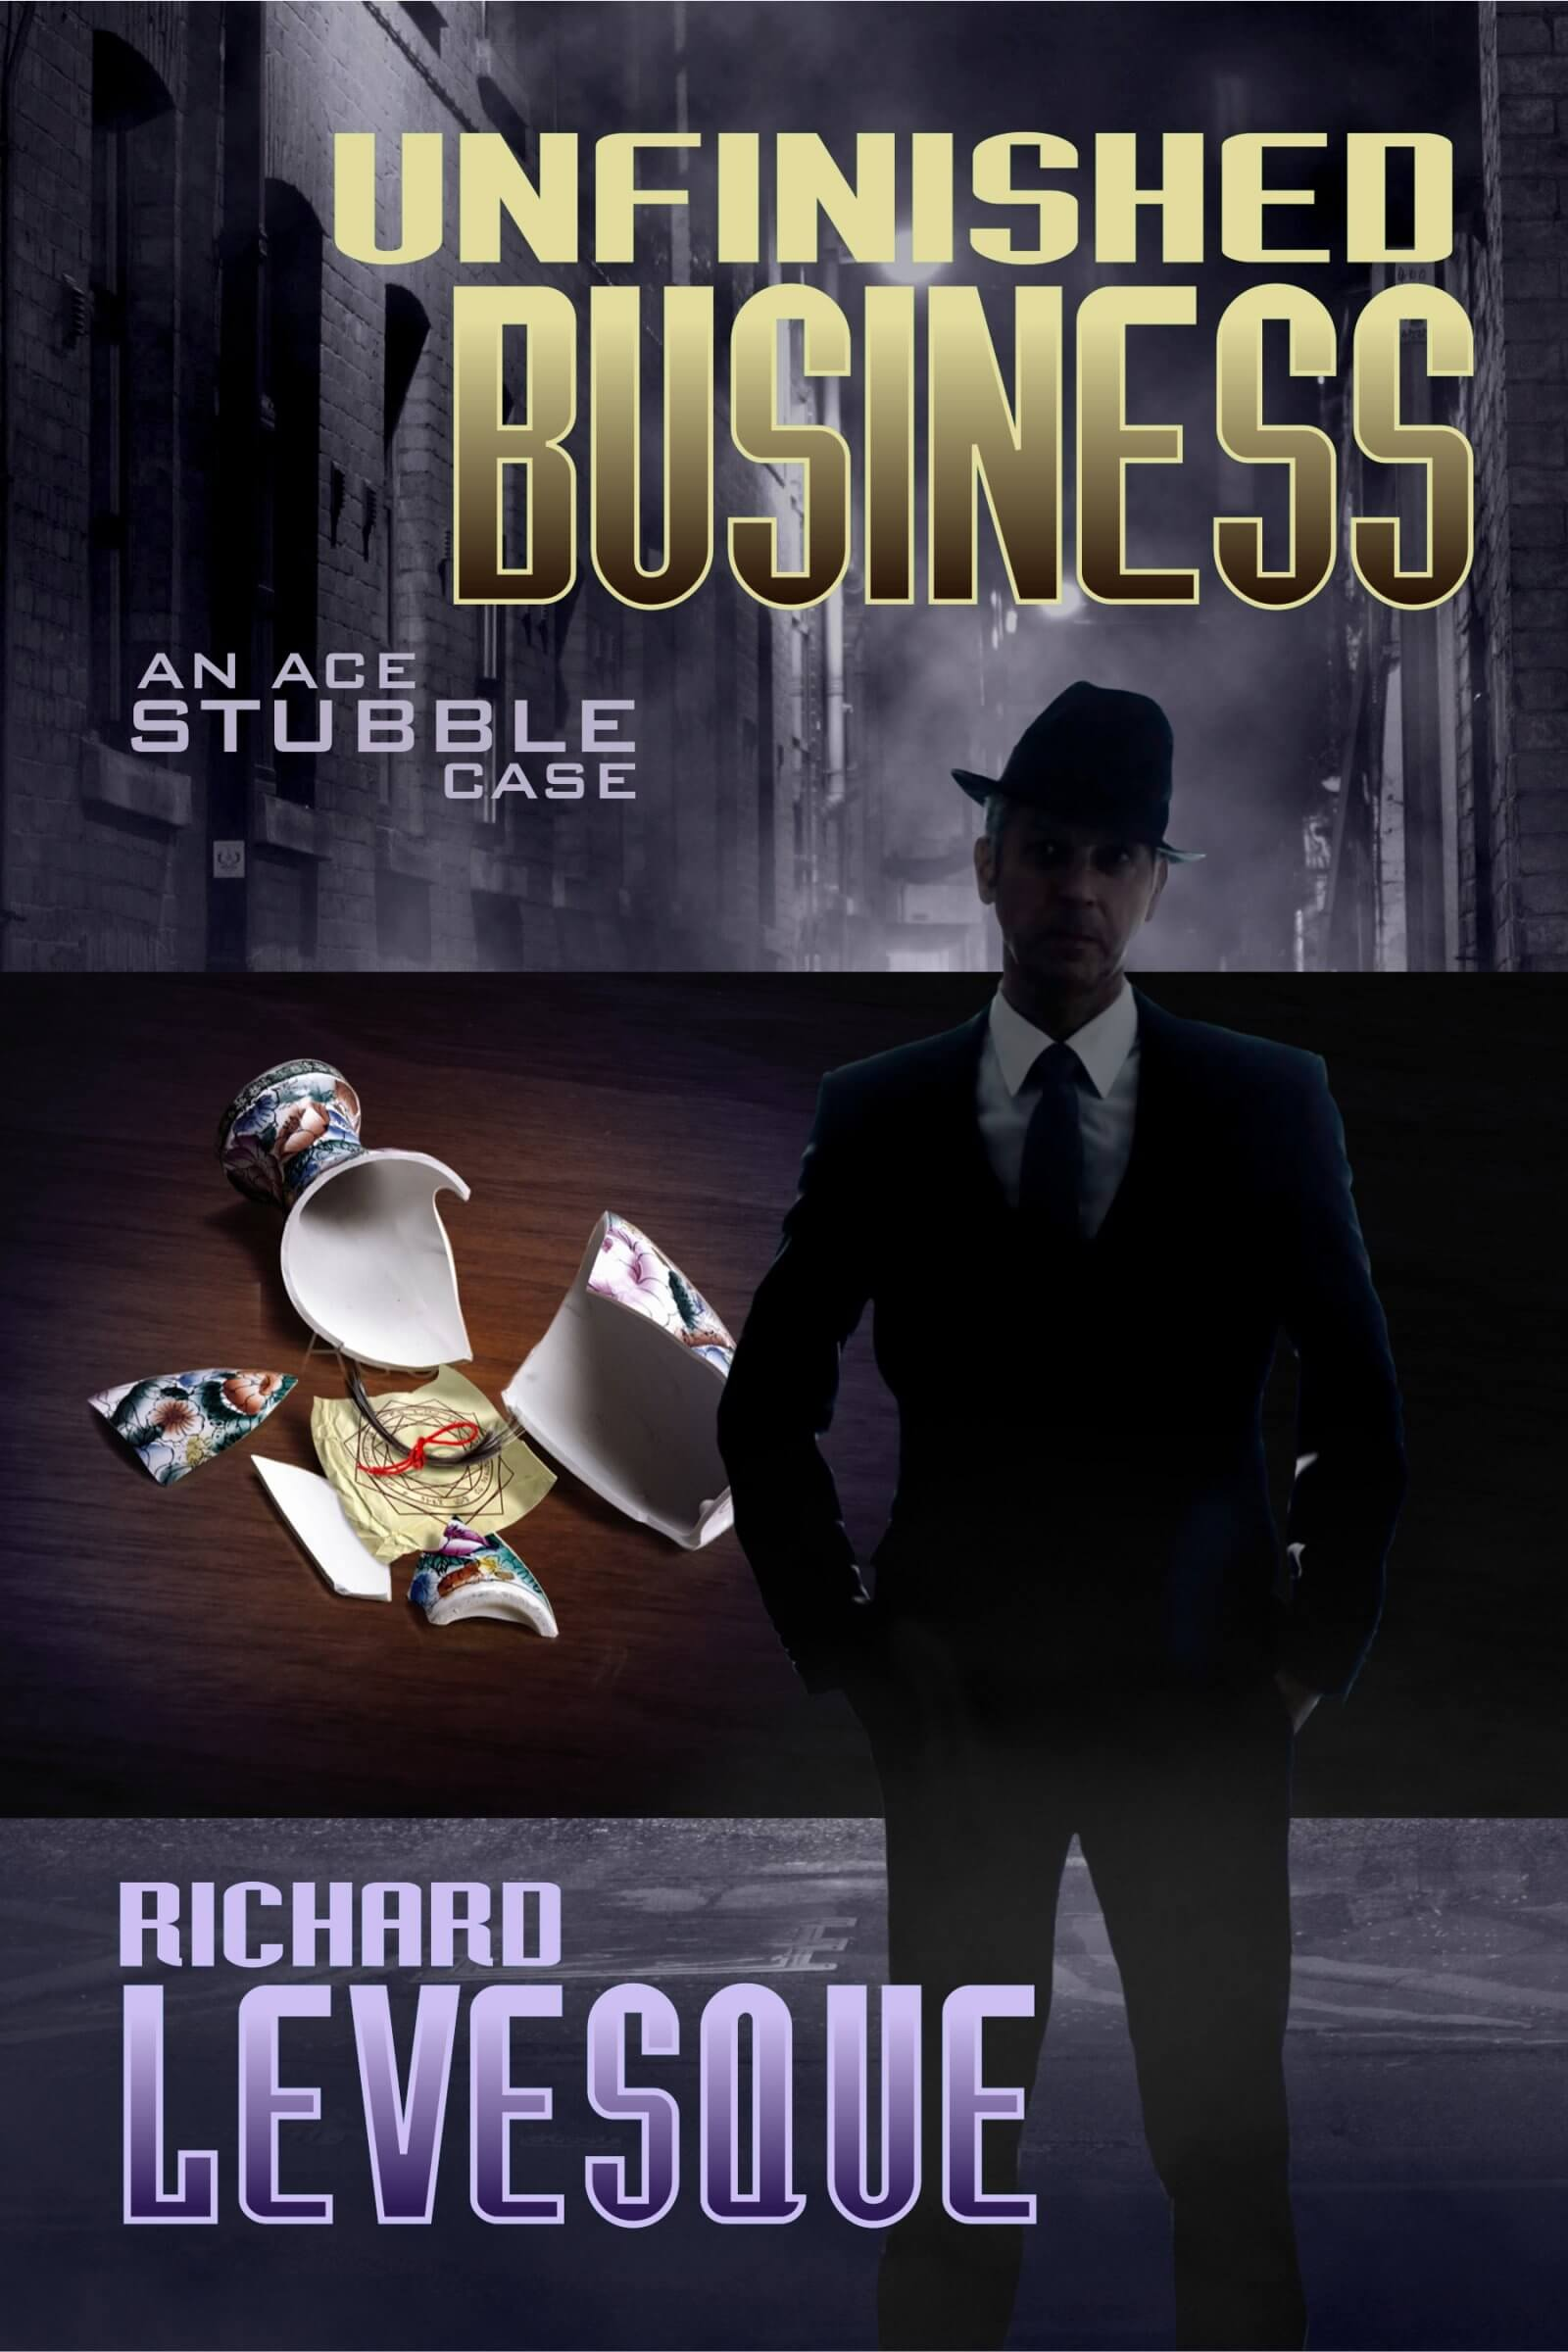 Unfinished Business book cover design by Corvid Design